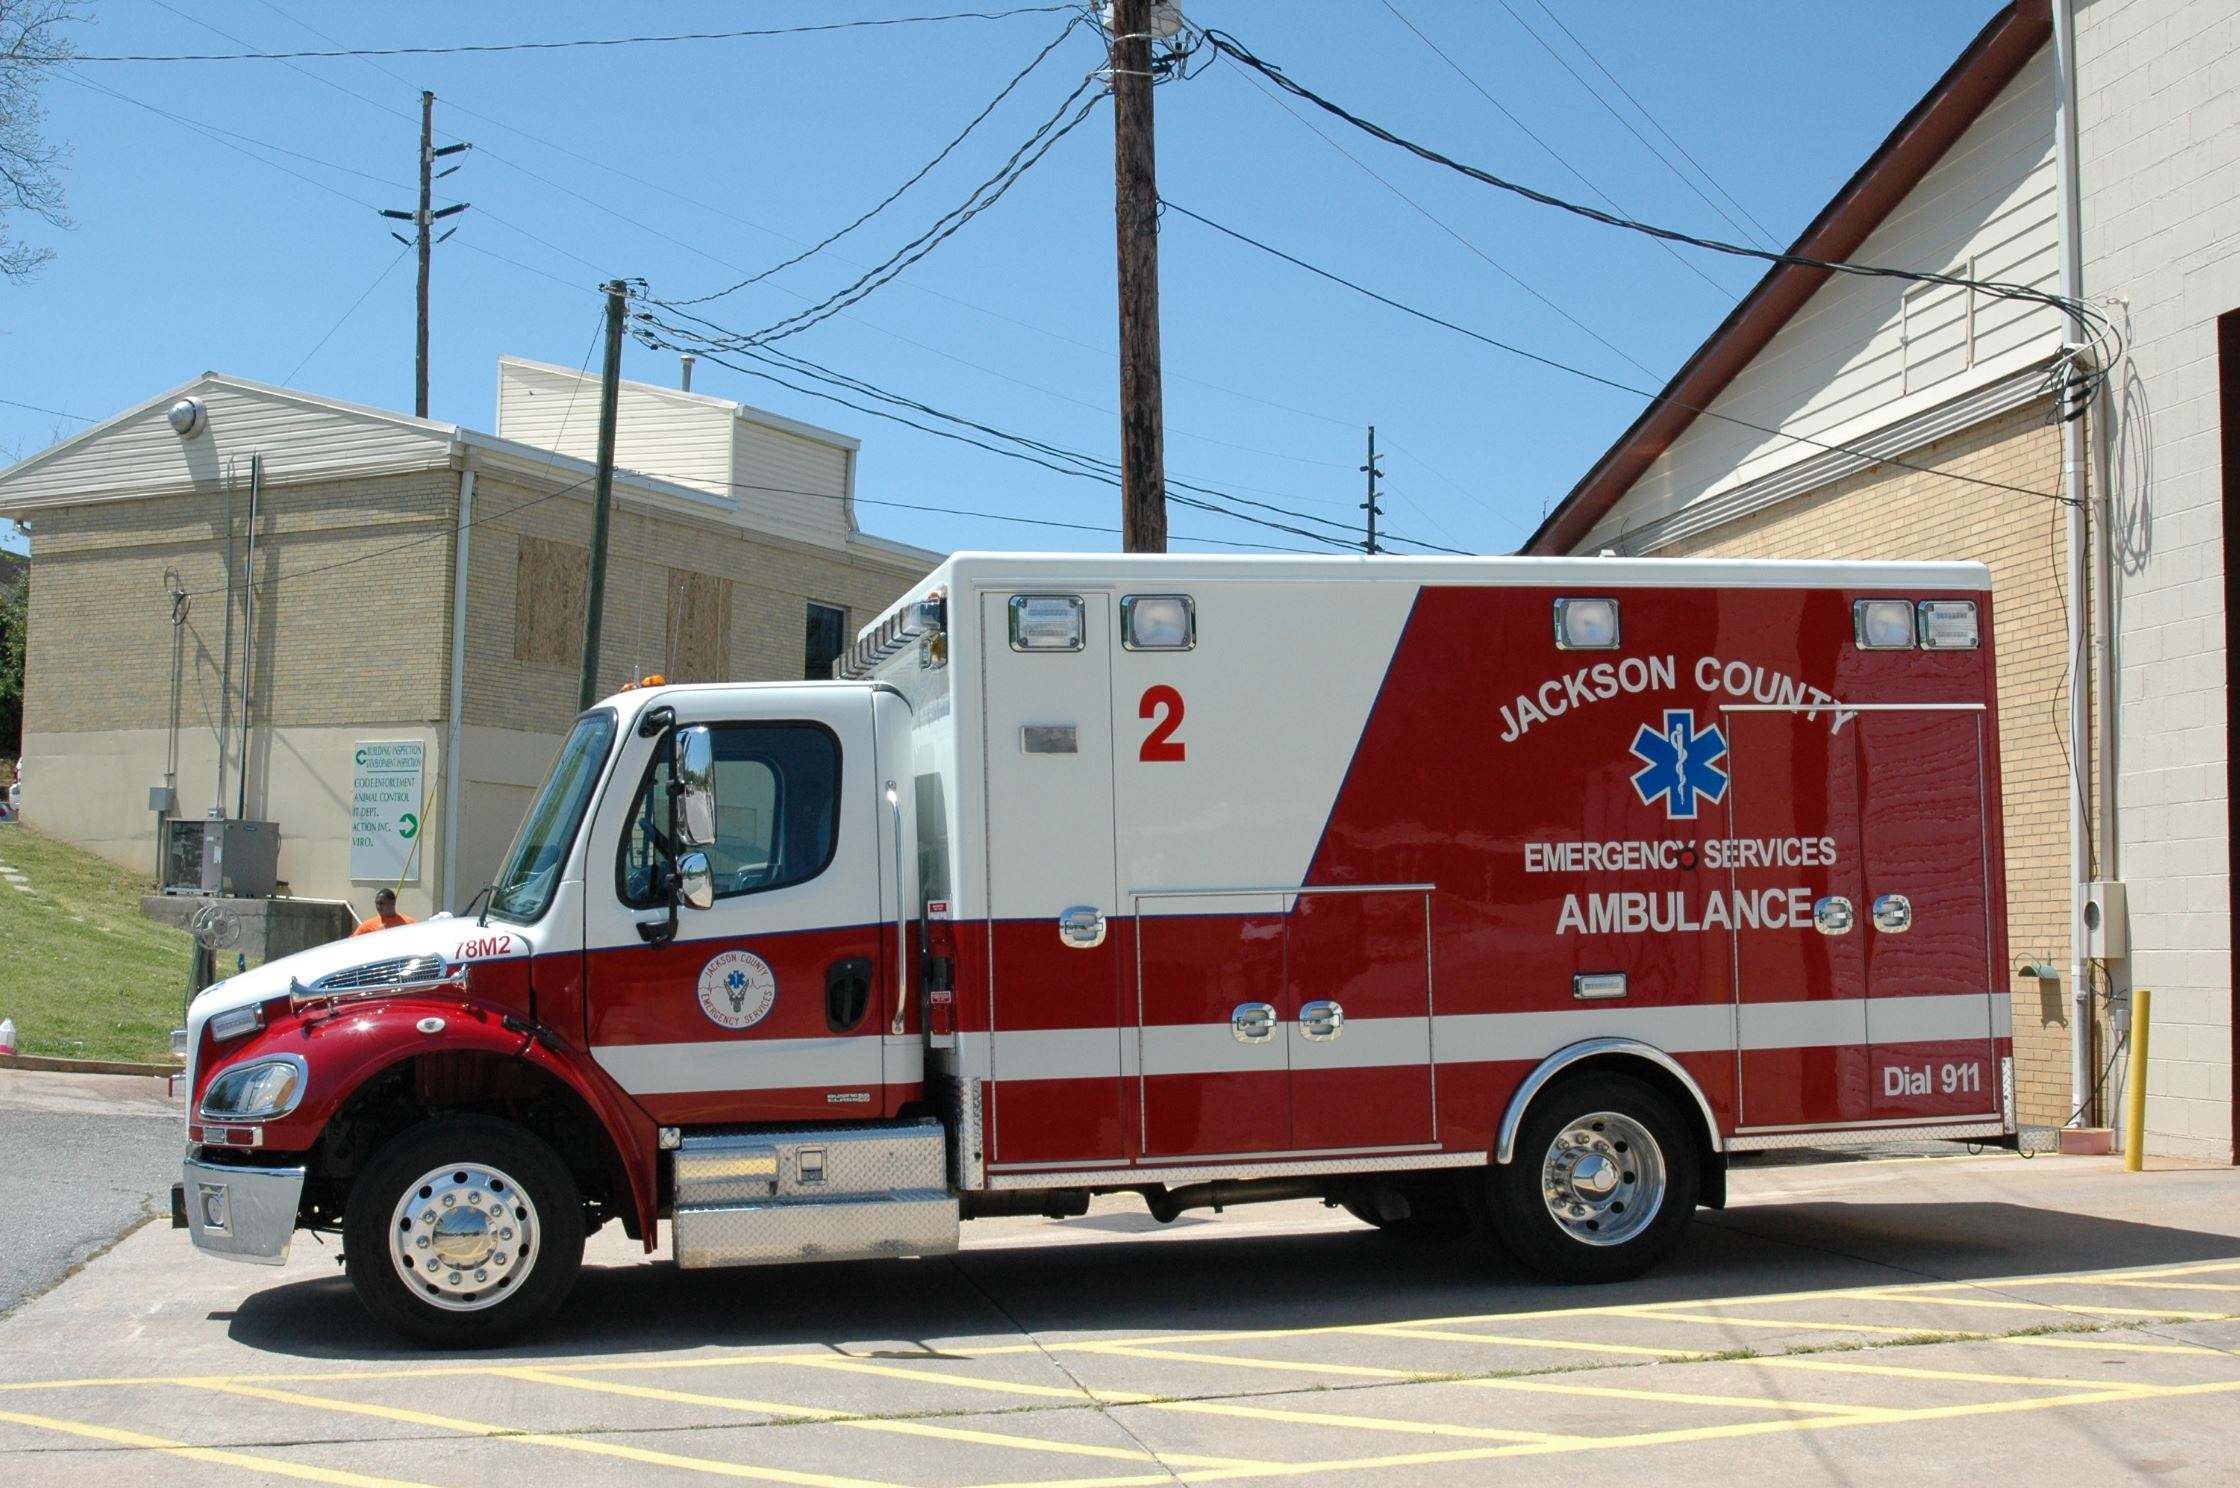 Jackson County Emergency Services Ambulance